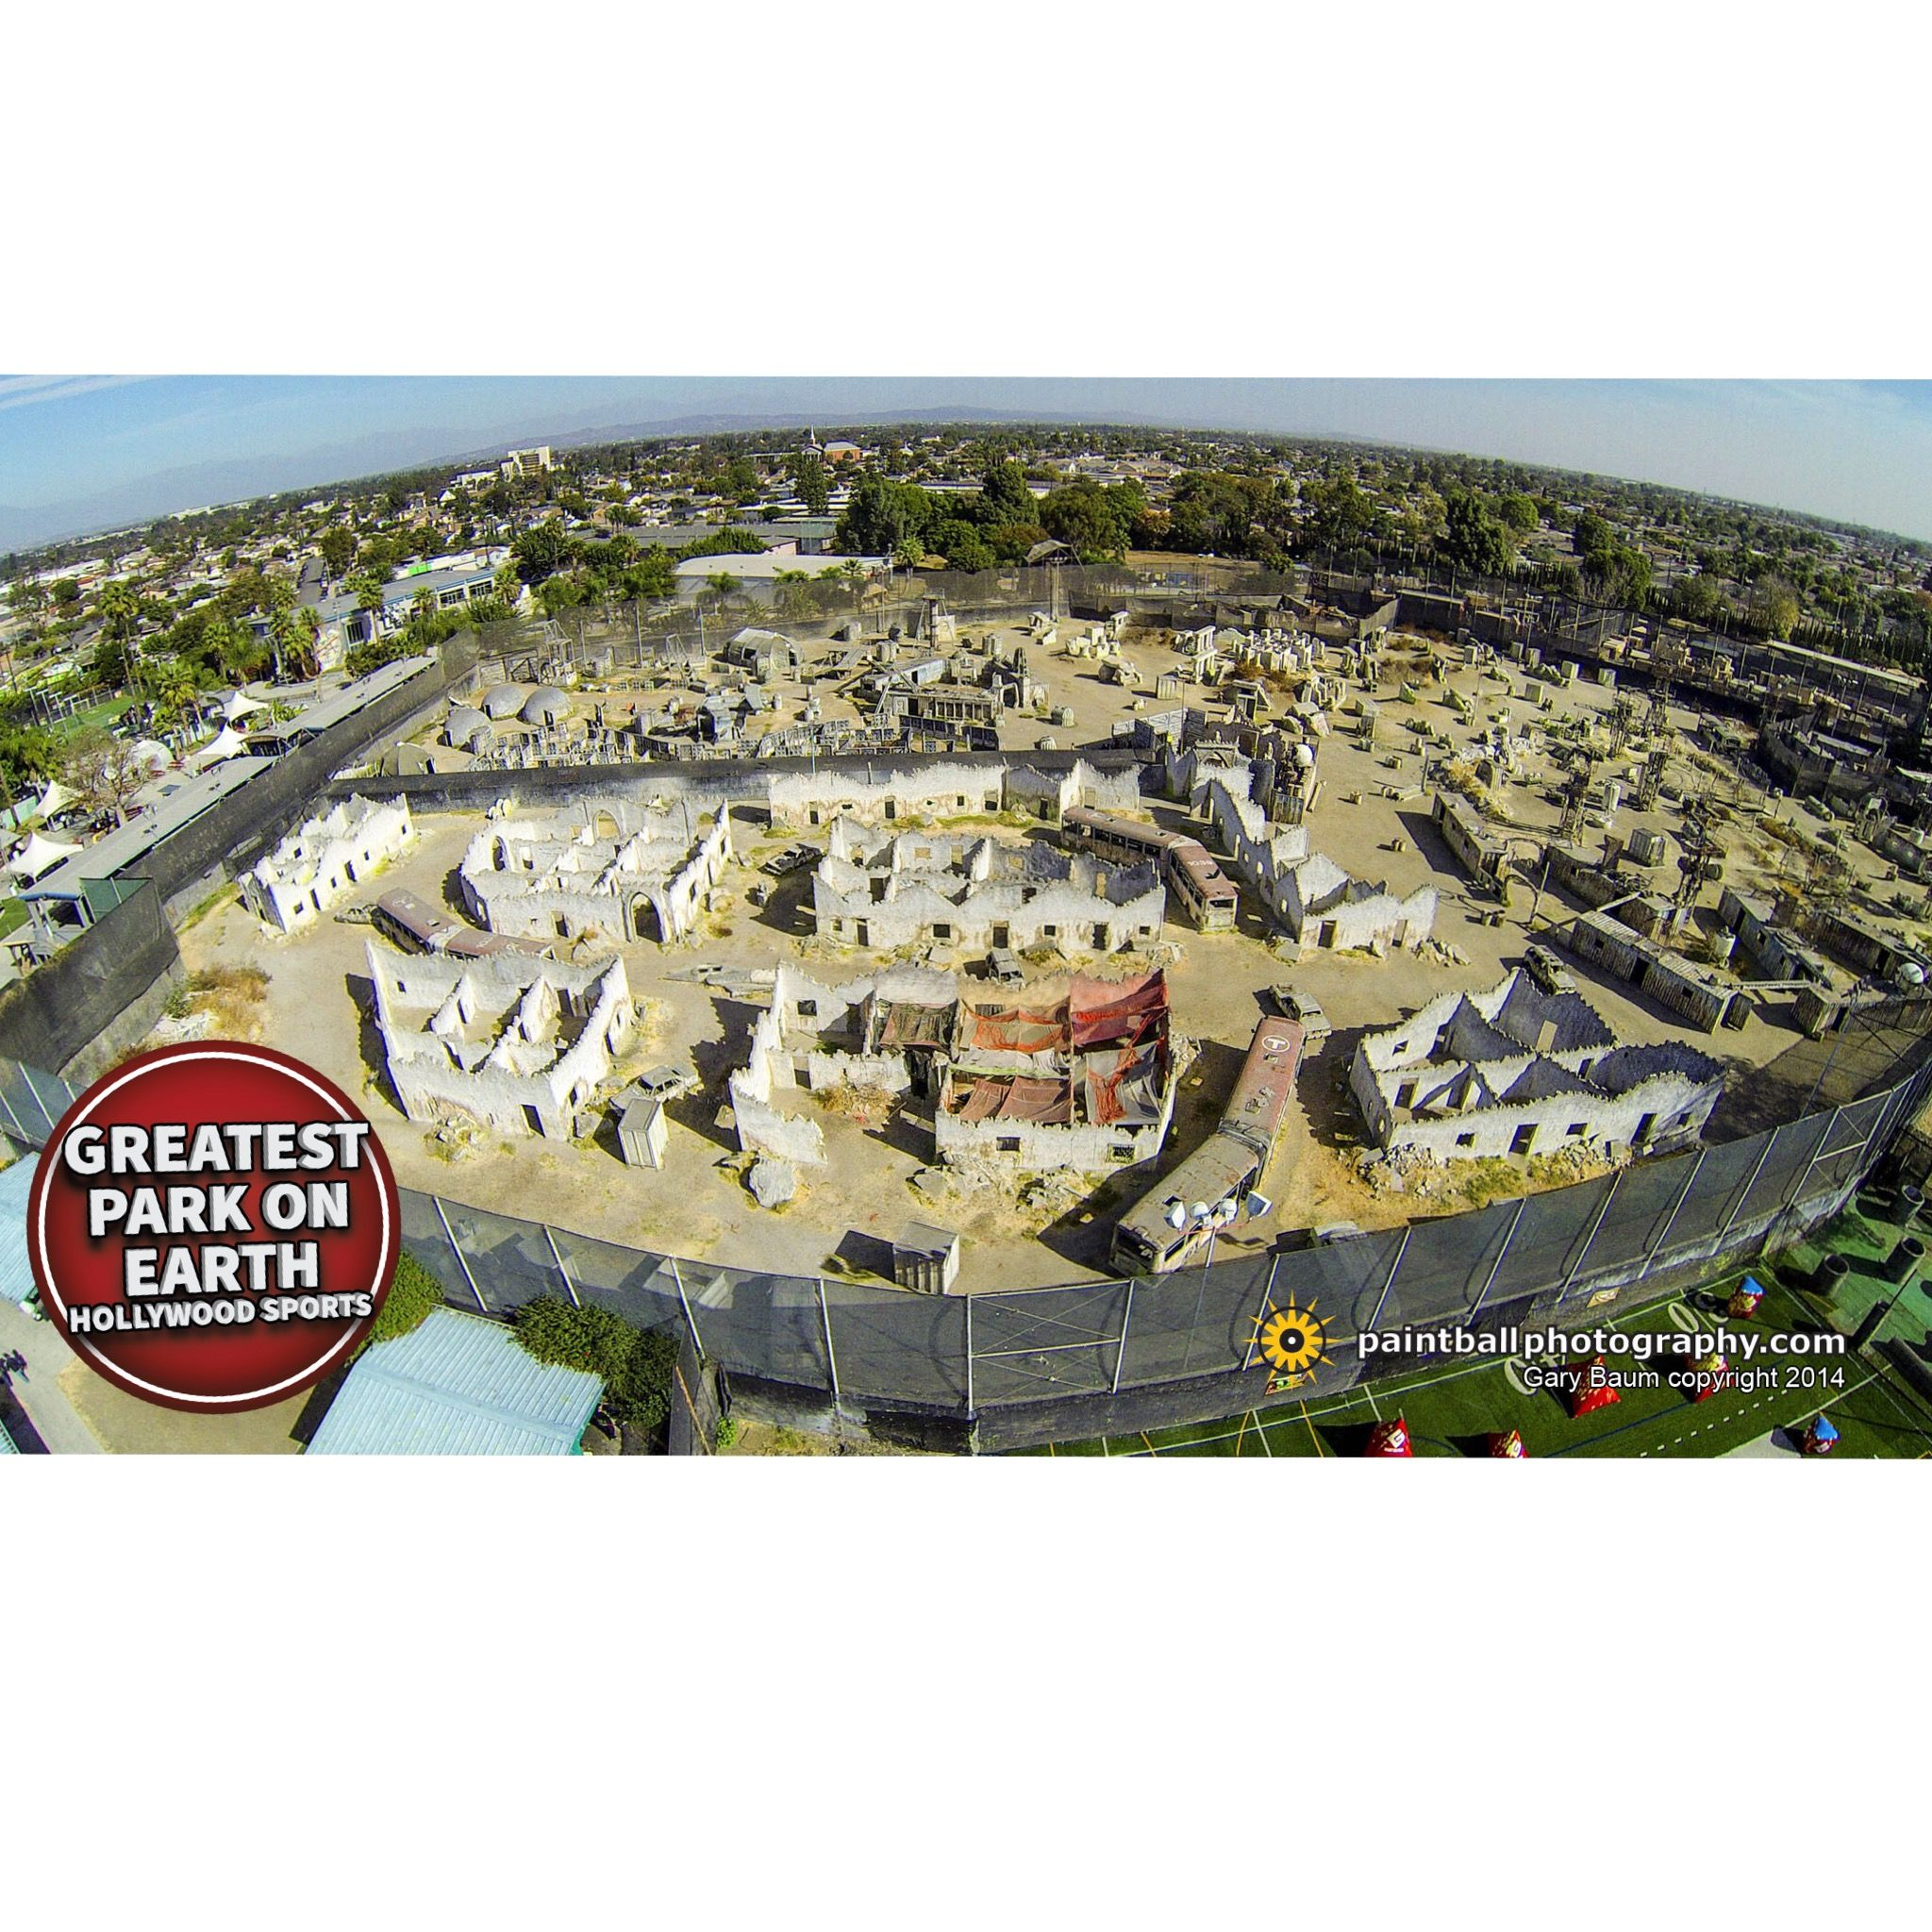 Hollywood Sports Paintball And Airsoft Park